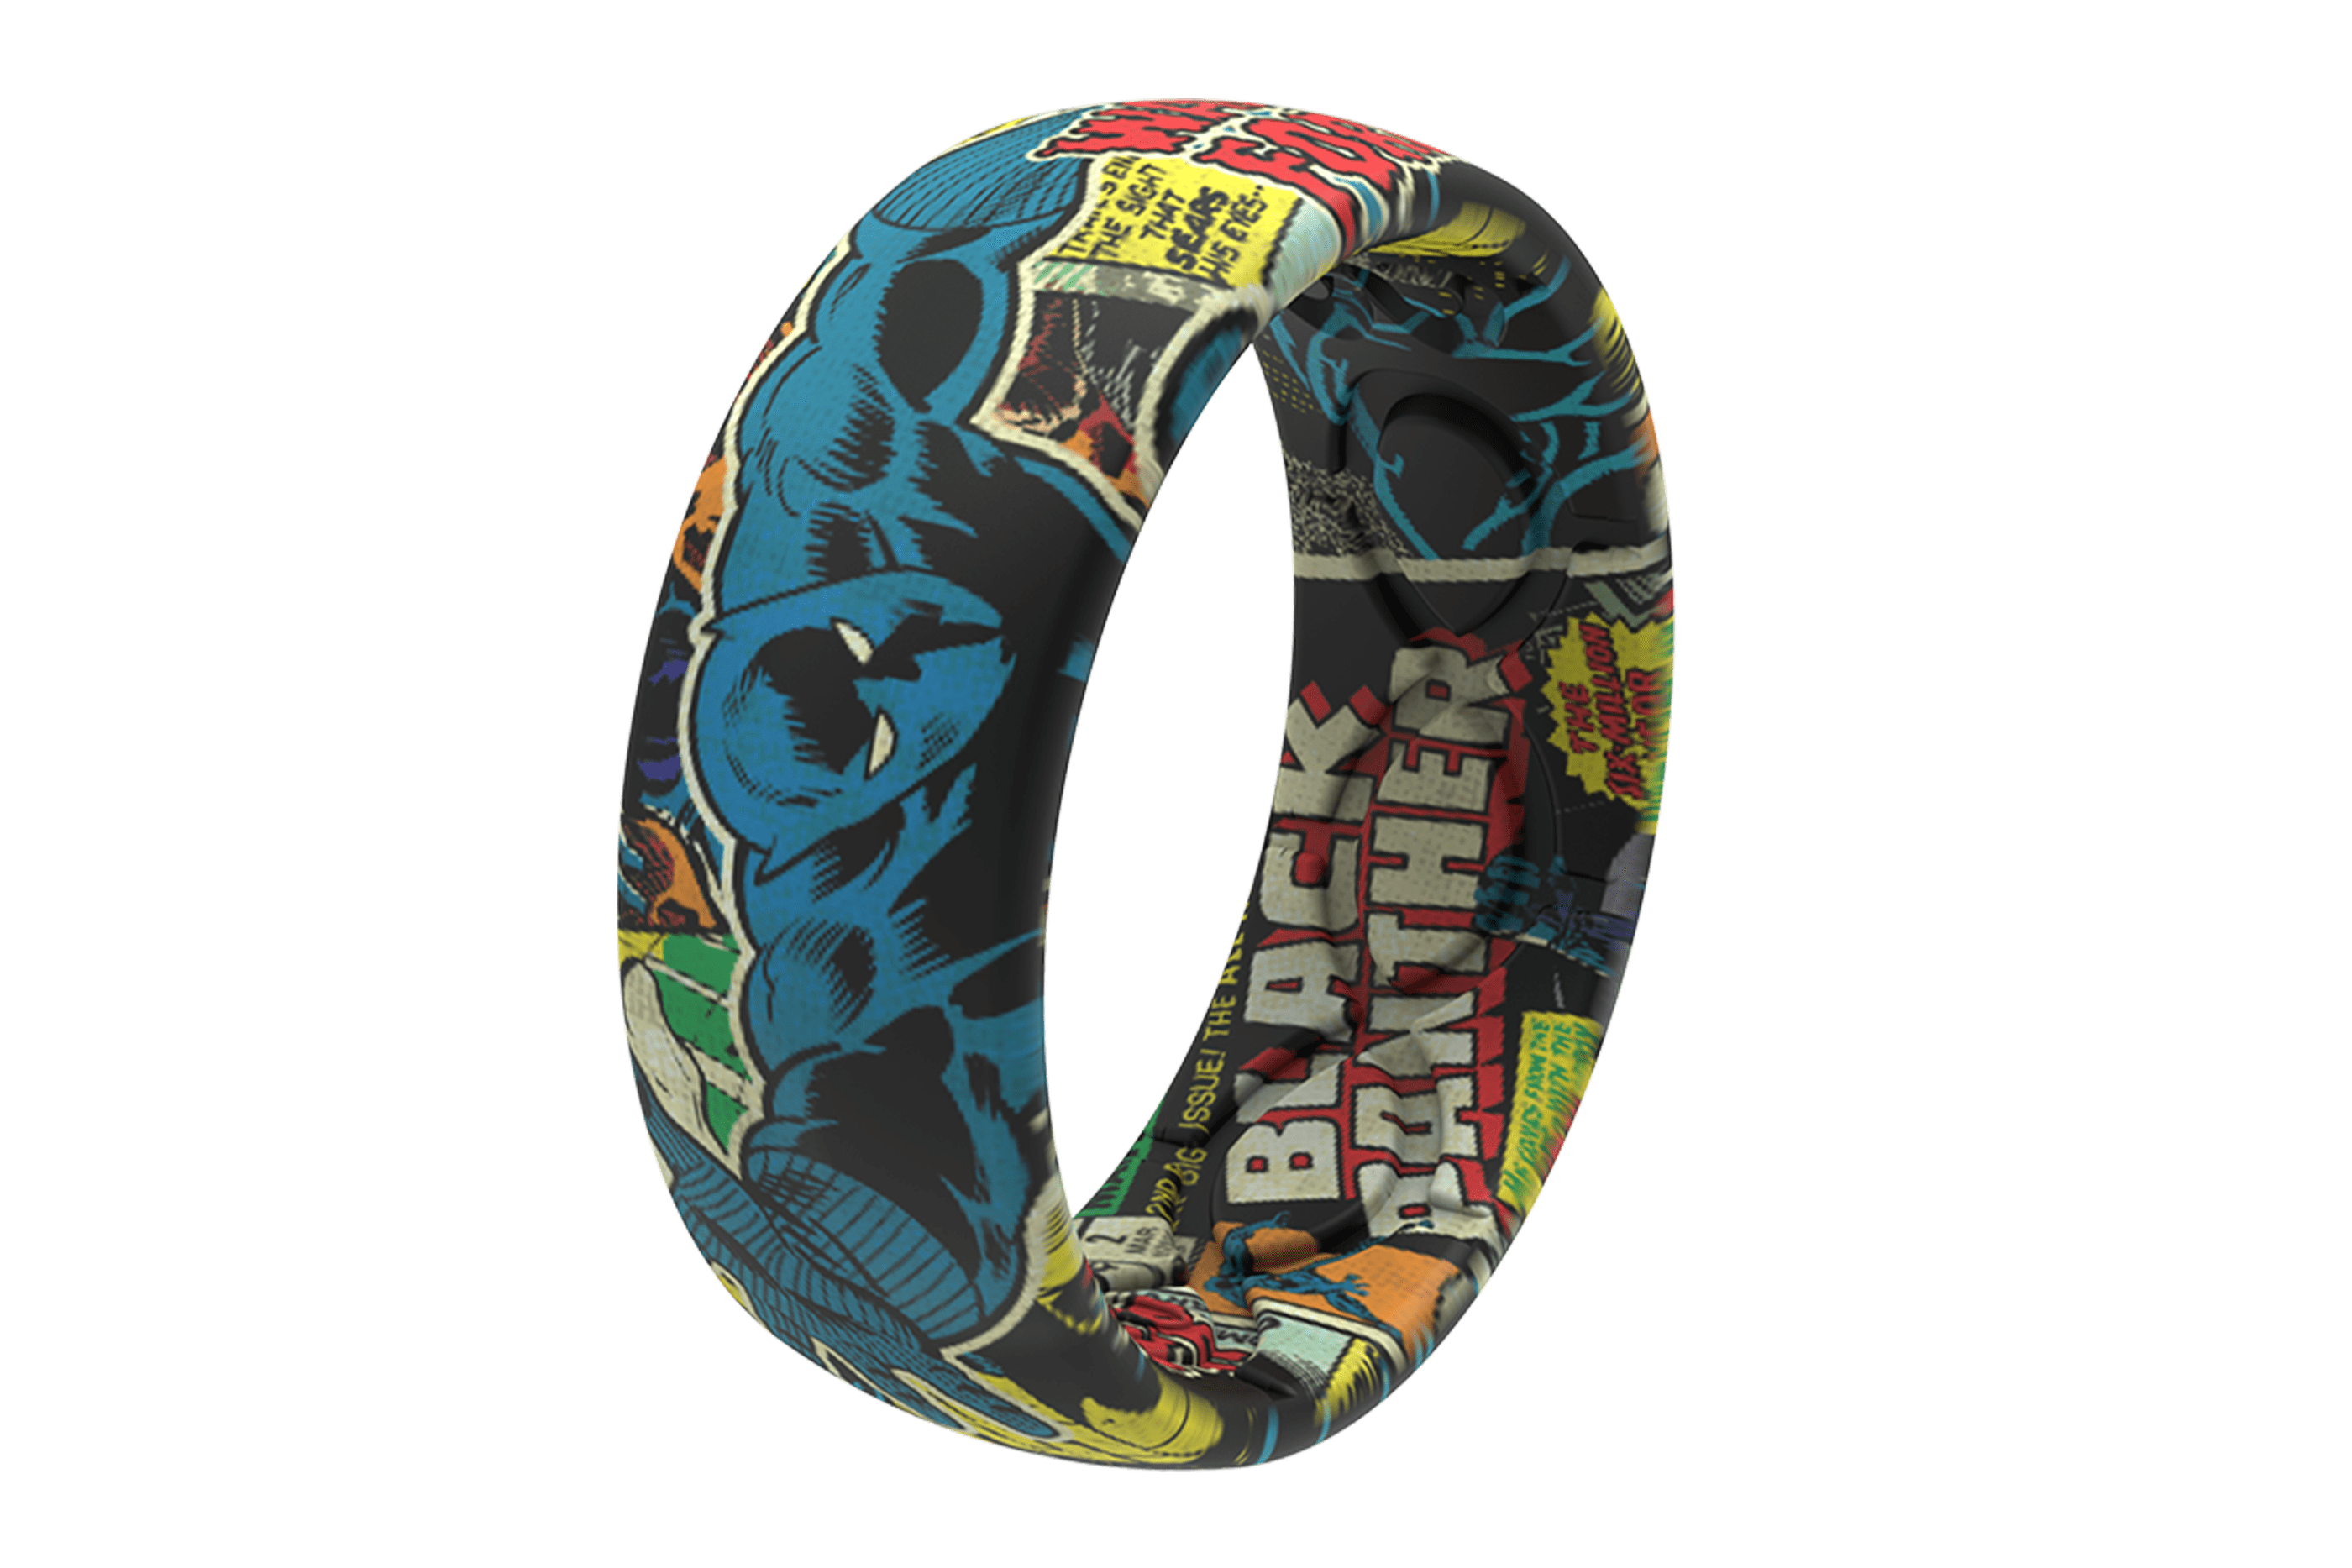 Black Panther Classic Comic  viewed from side